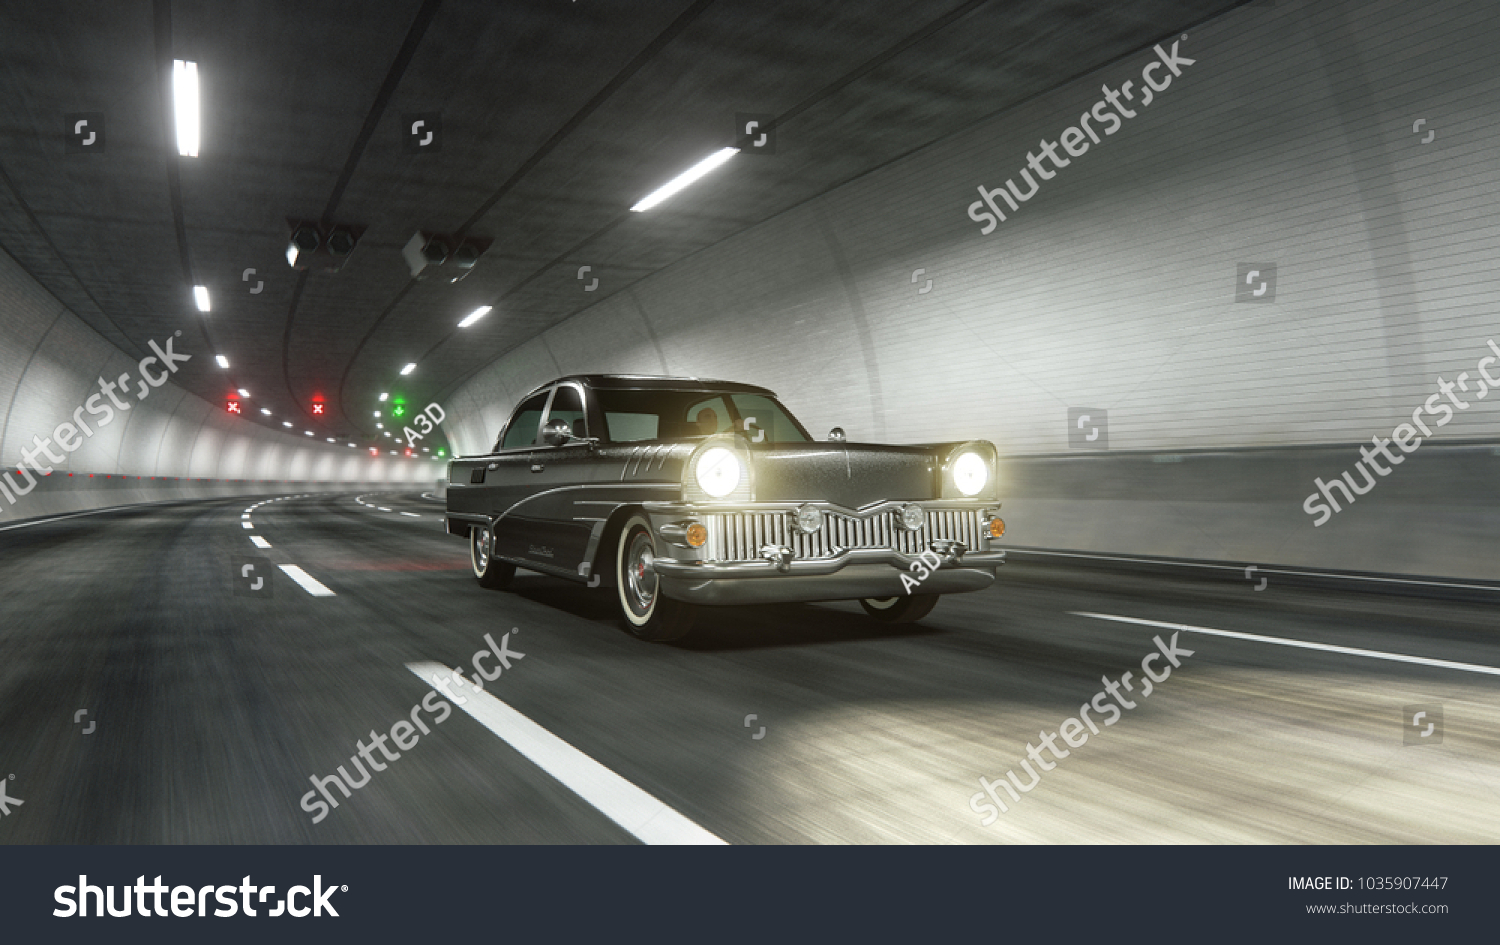 Oldstyle Classic Car Rides Trough Tunnel Stock Illustration ...